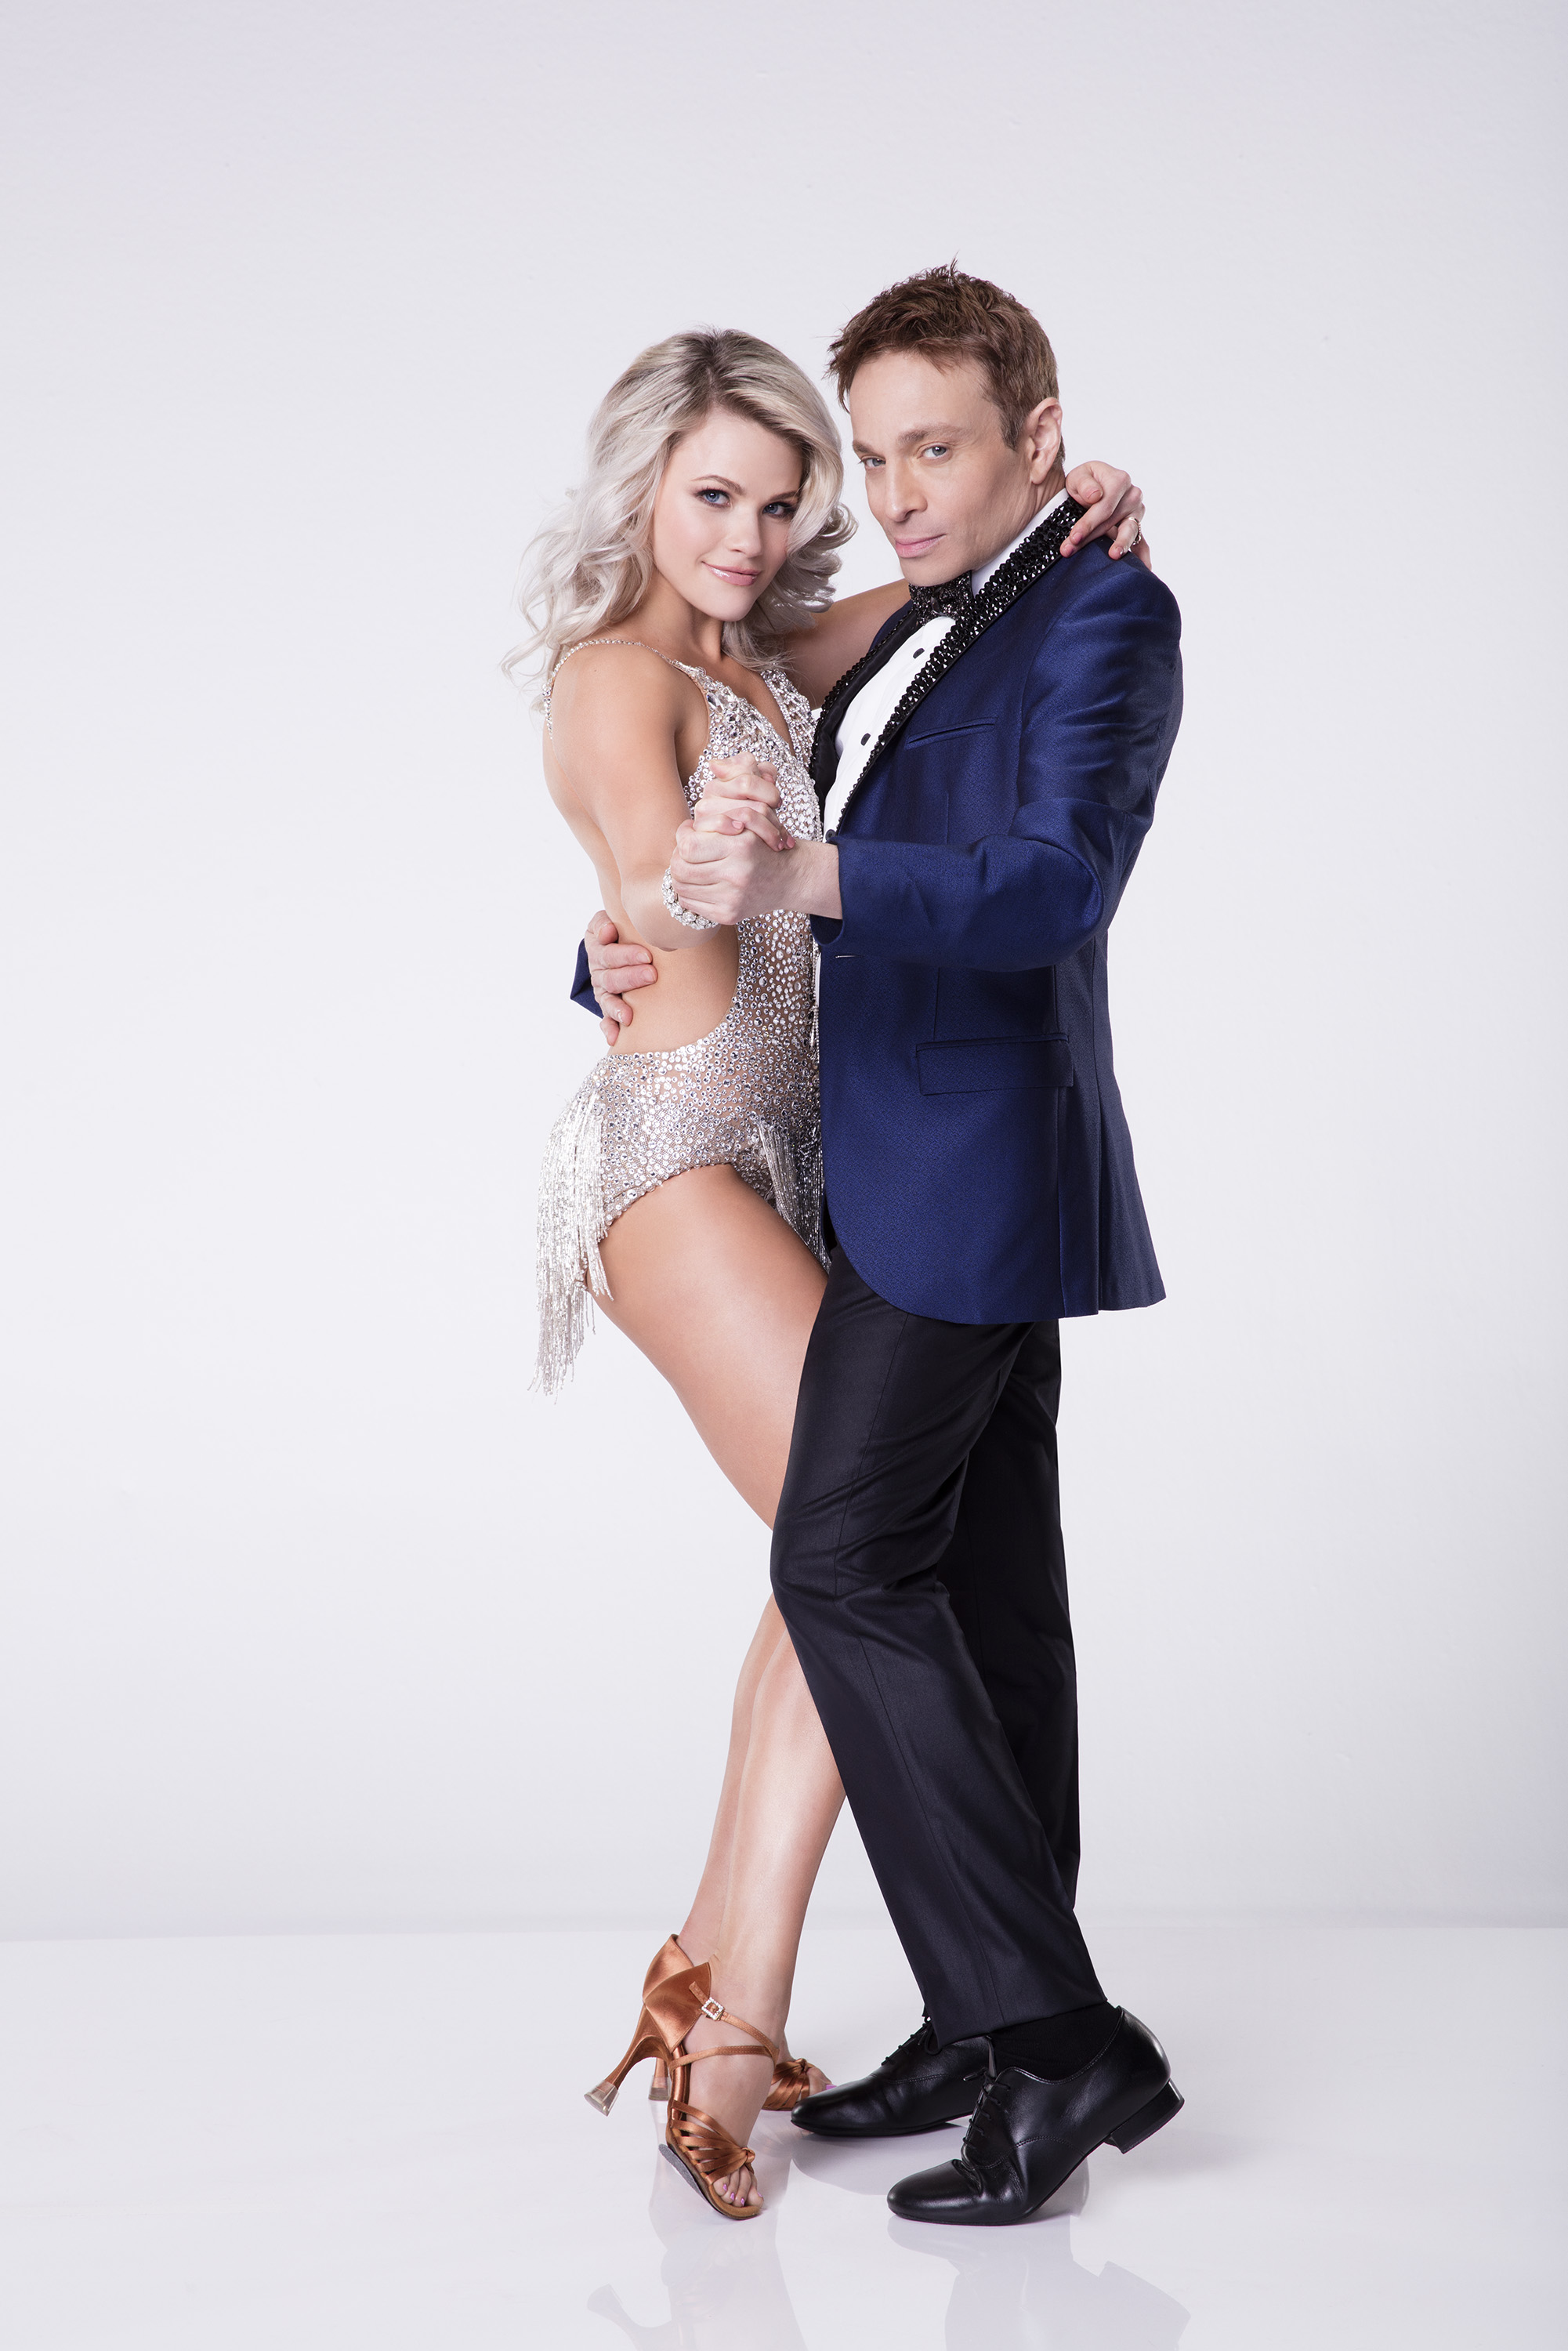 witney-carson-chris-katan-dancing-with-the-stars